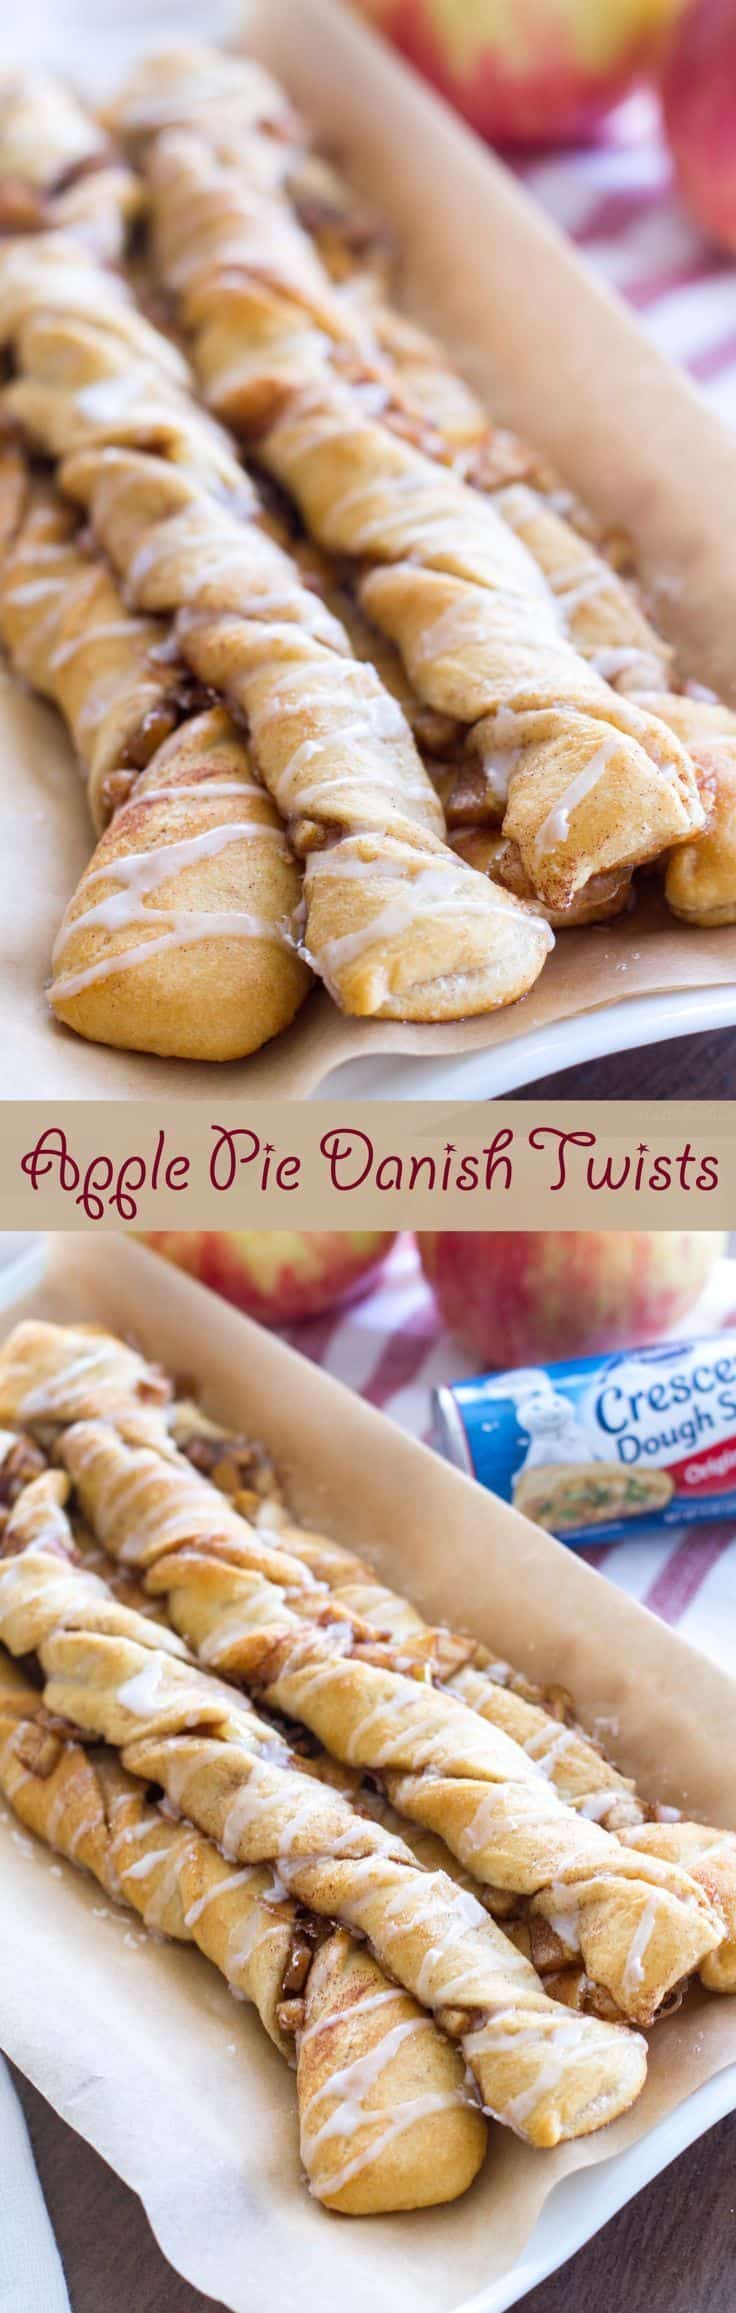 Apple pie danish twists